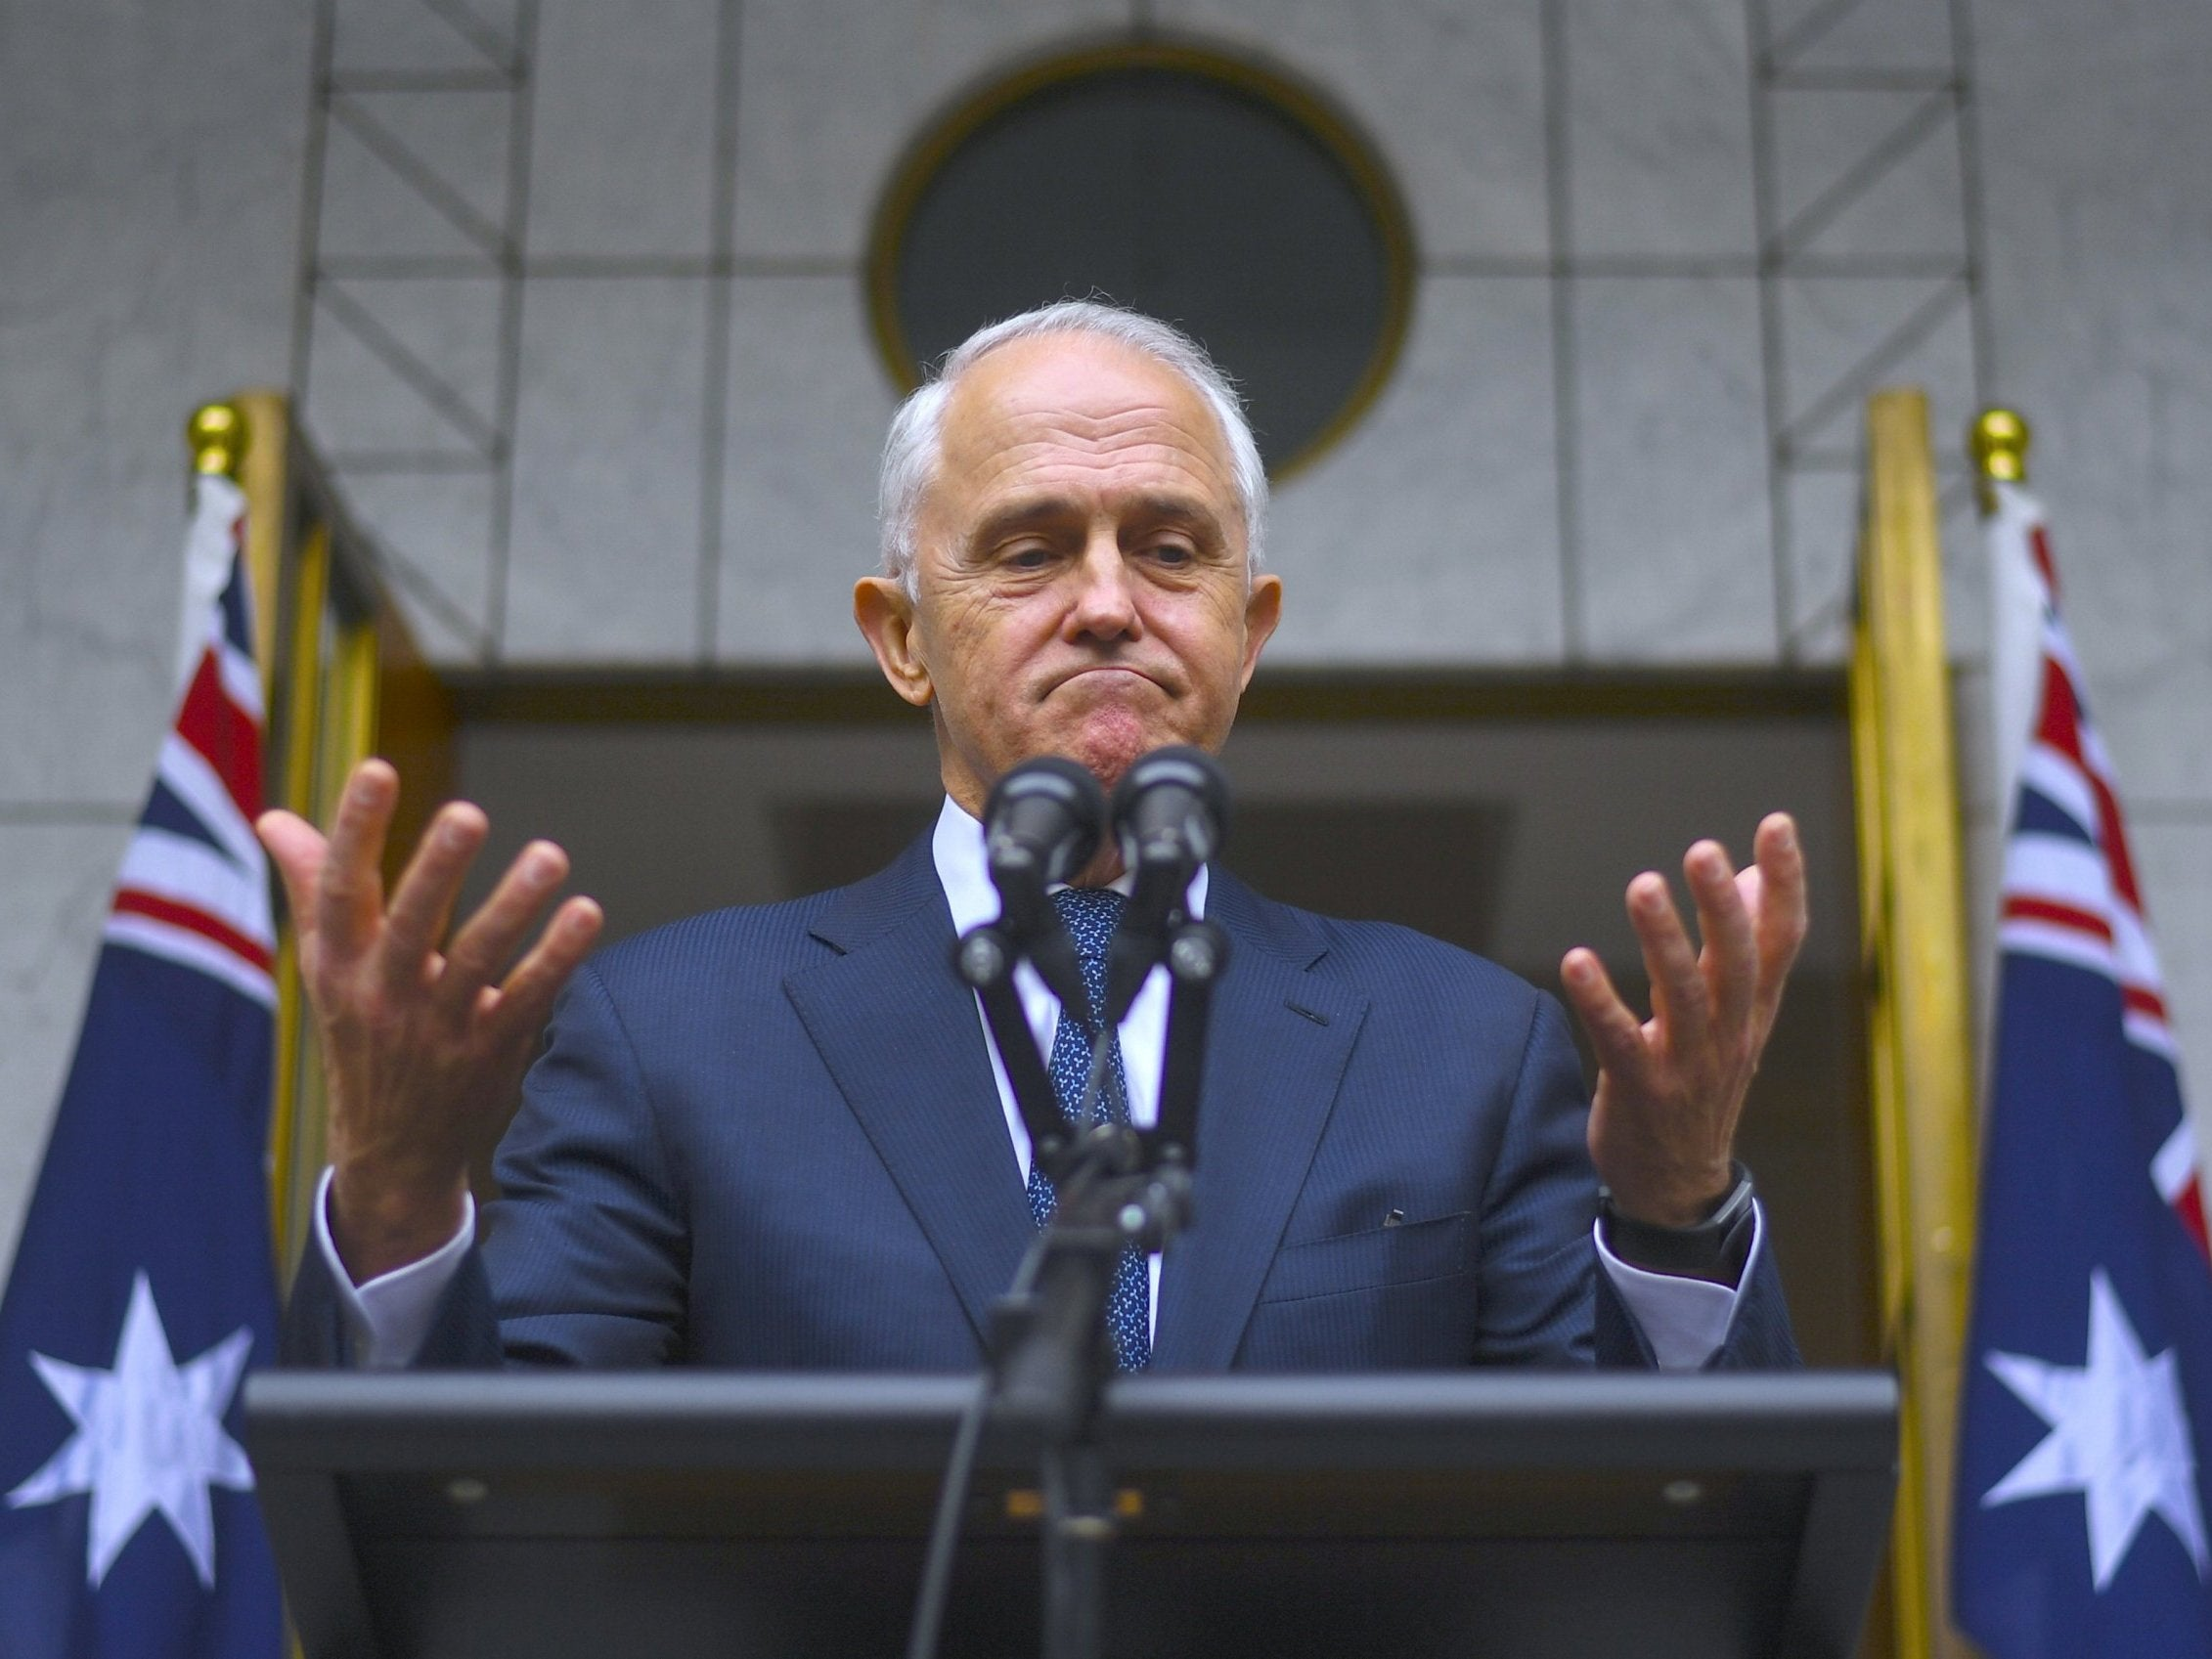 Australia PM Malcolm Turnbull faces being ousted as his own party pulls support